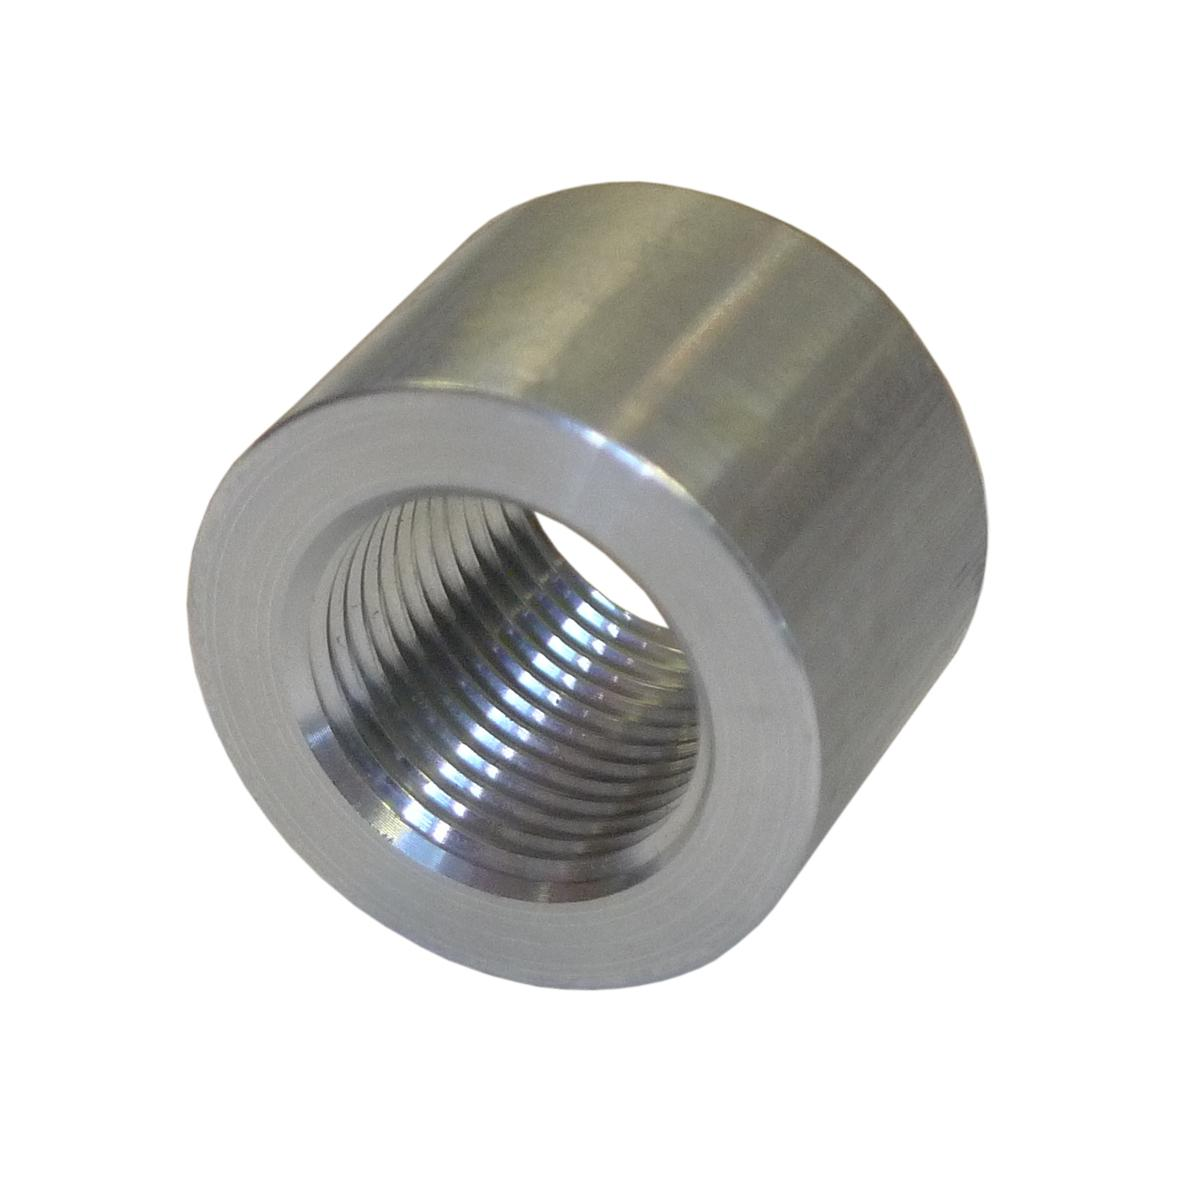 1 2 Inch Bsp Female Fitting Weld On Fitting Alloy